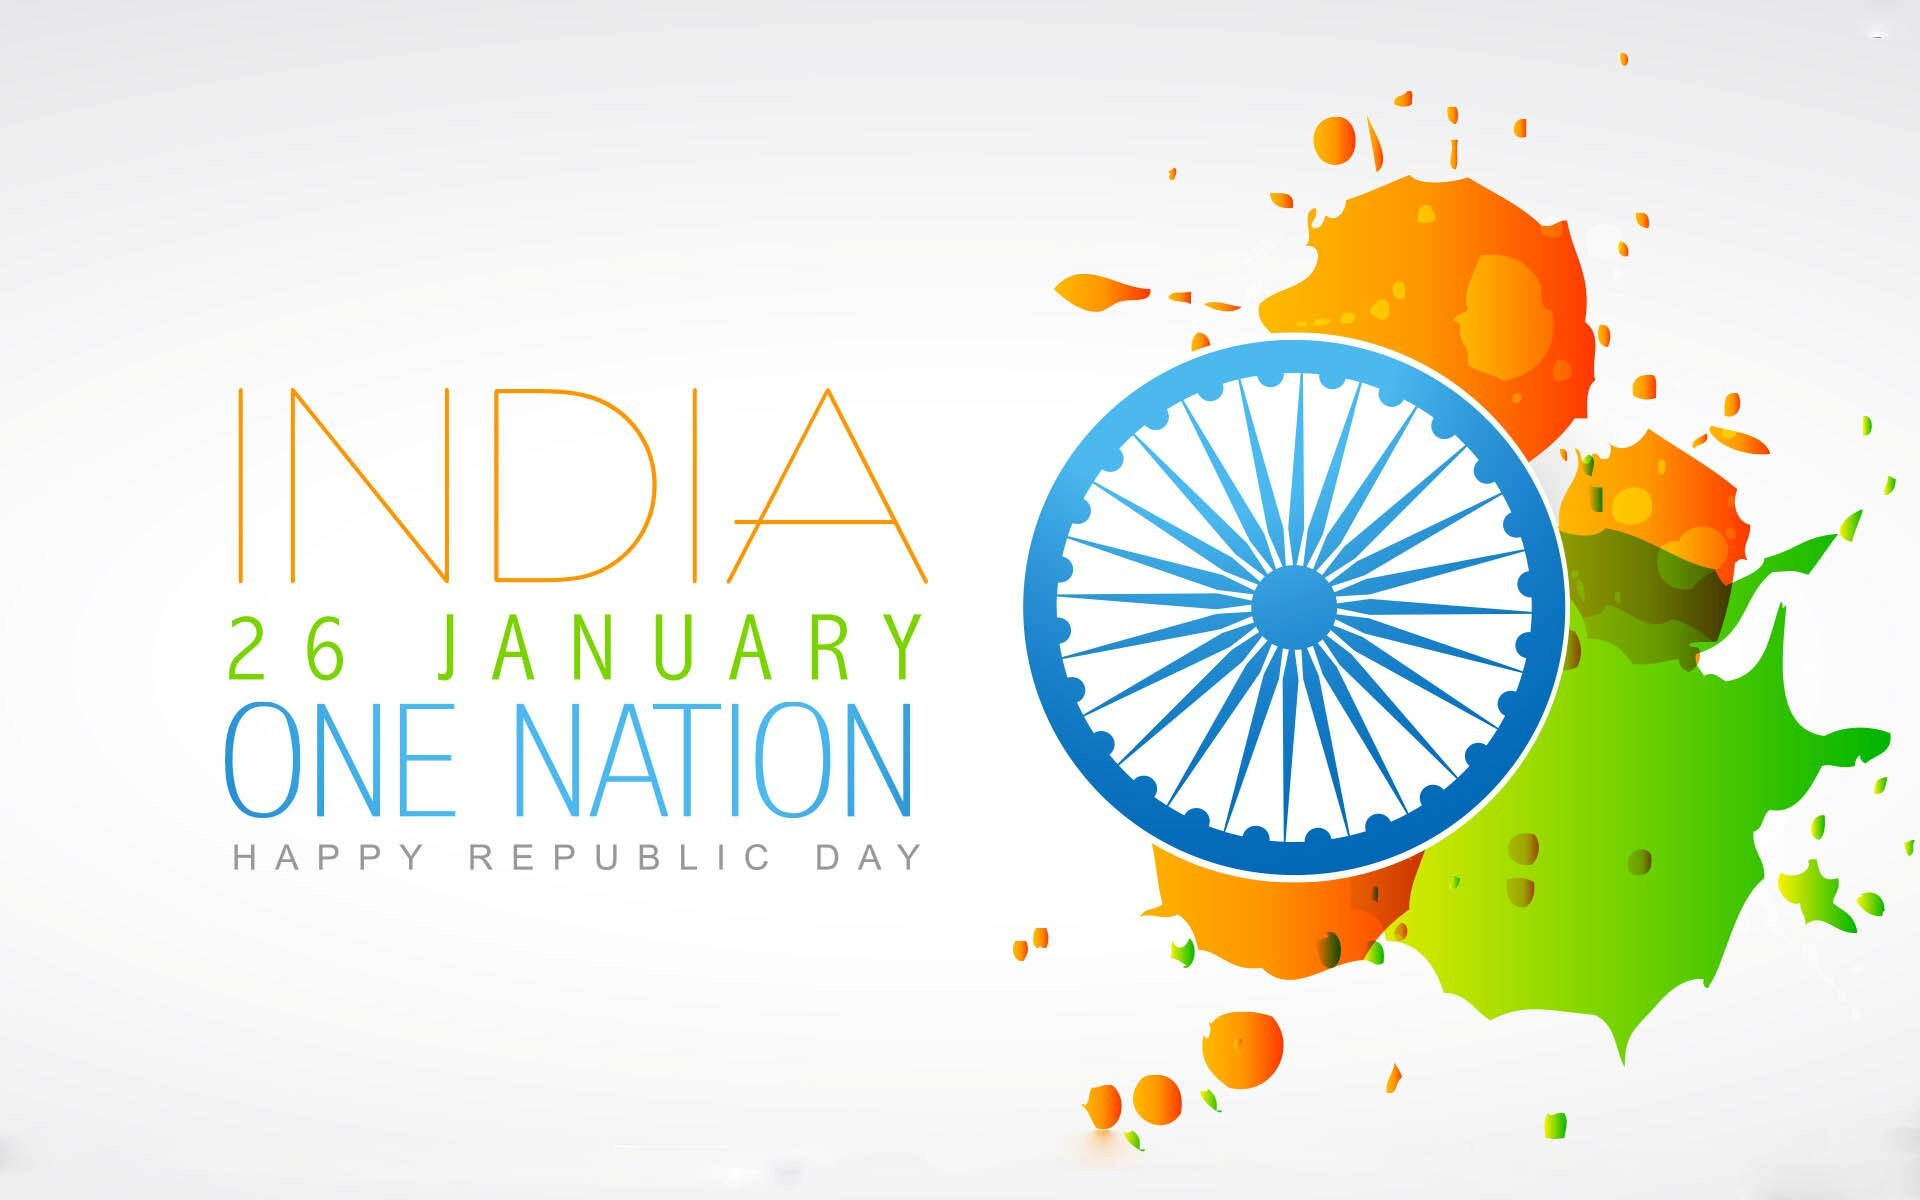 republic day hd wallpapers images pictures photos download | page 2